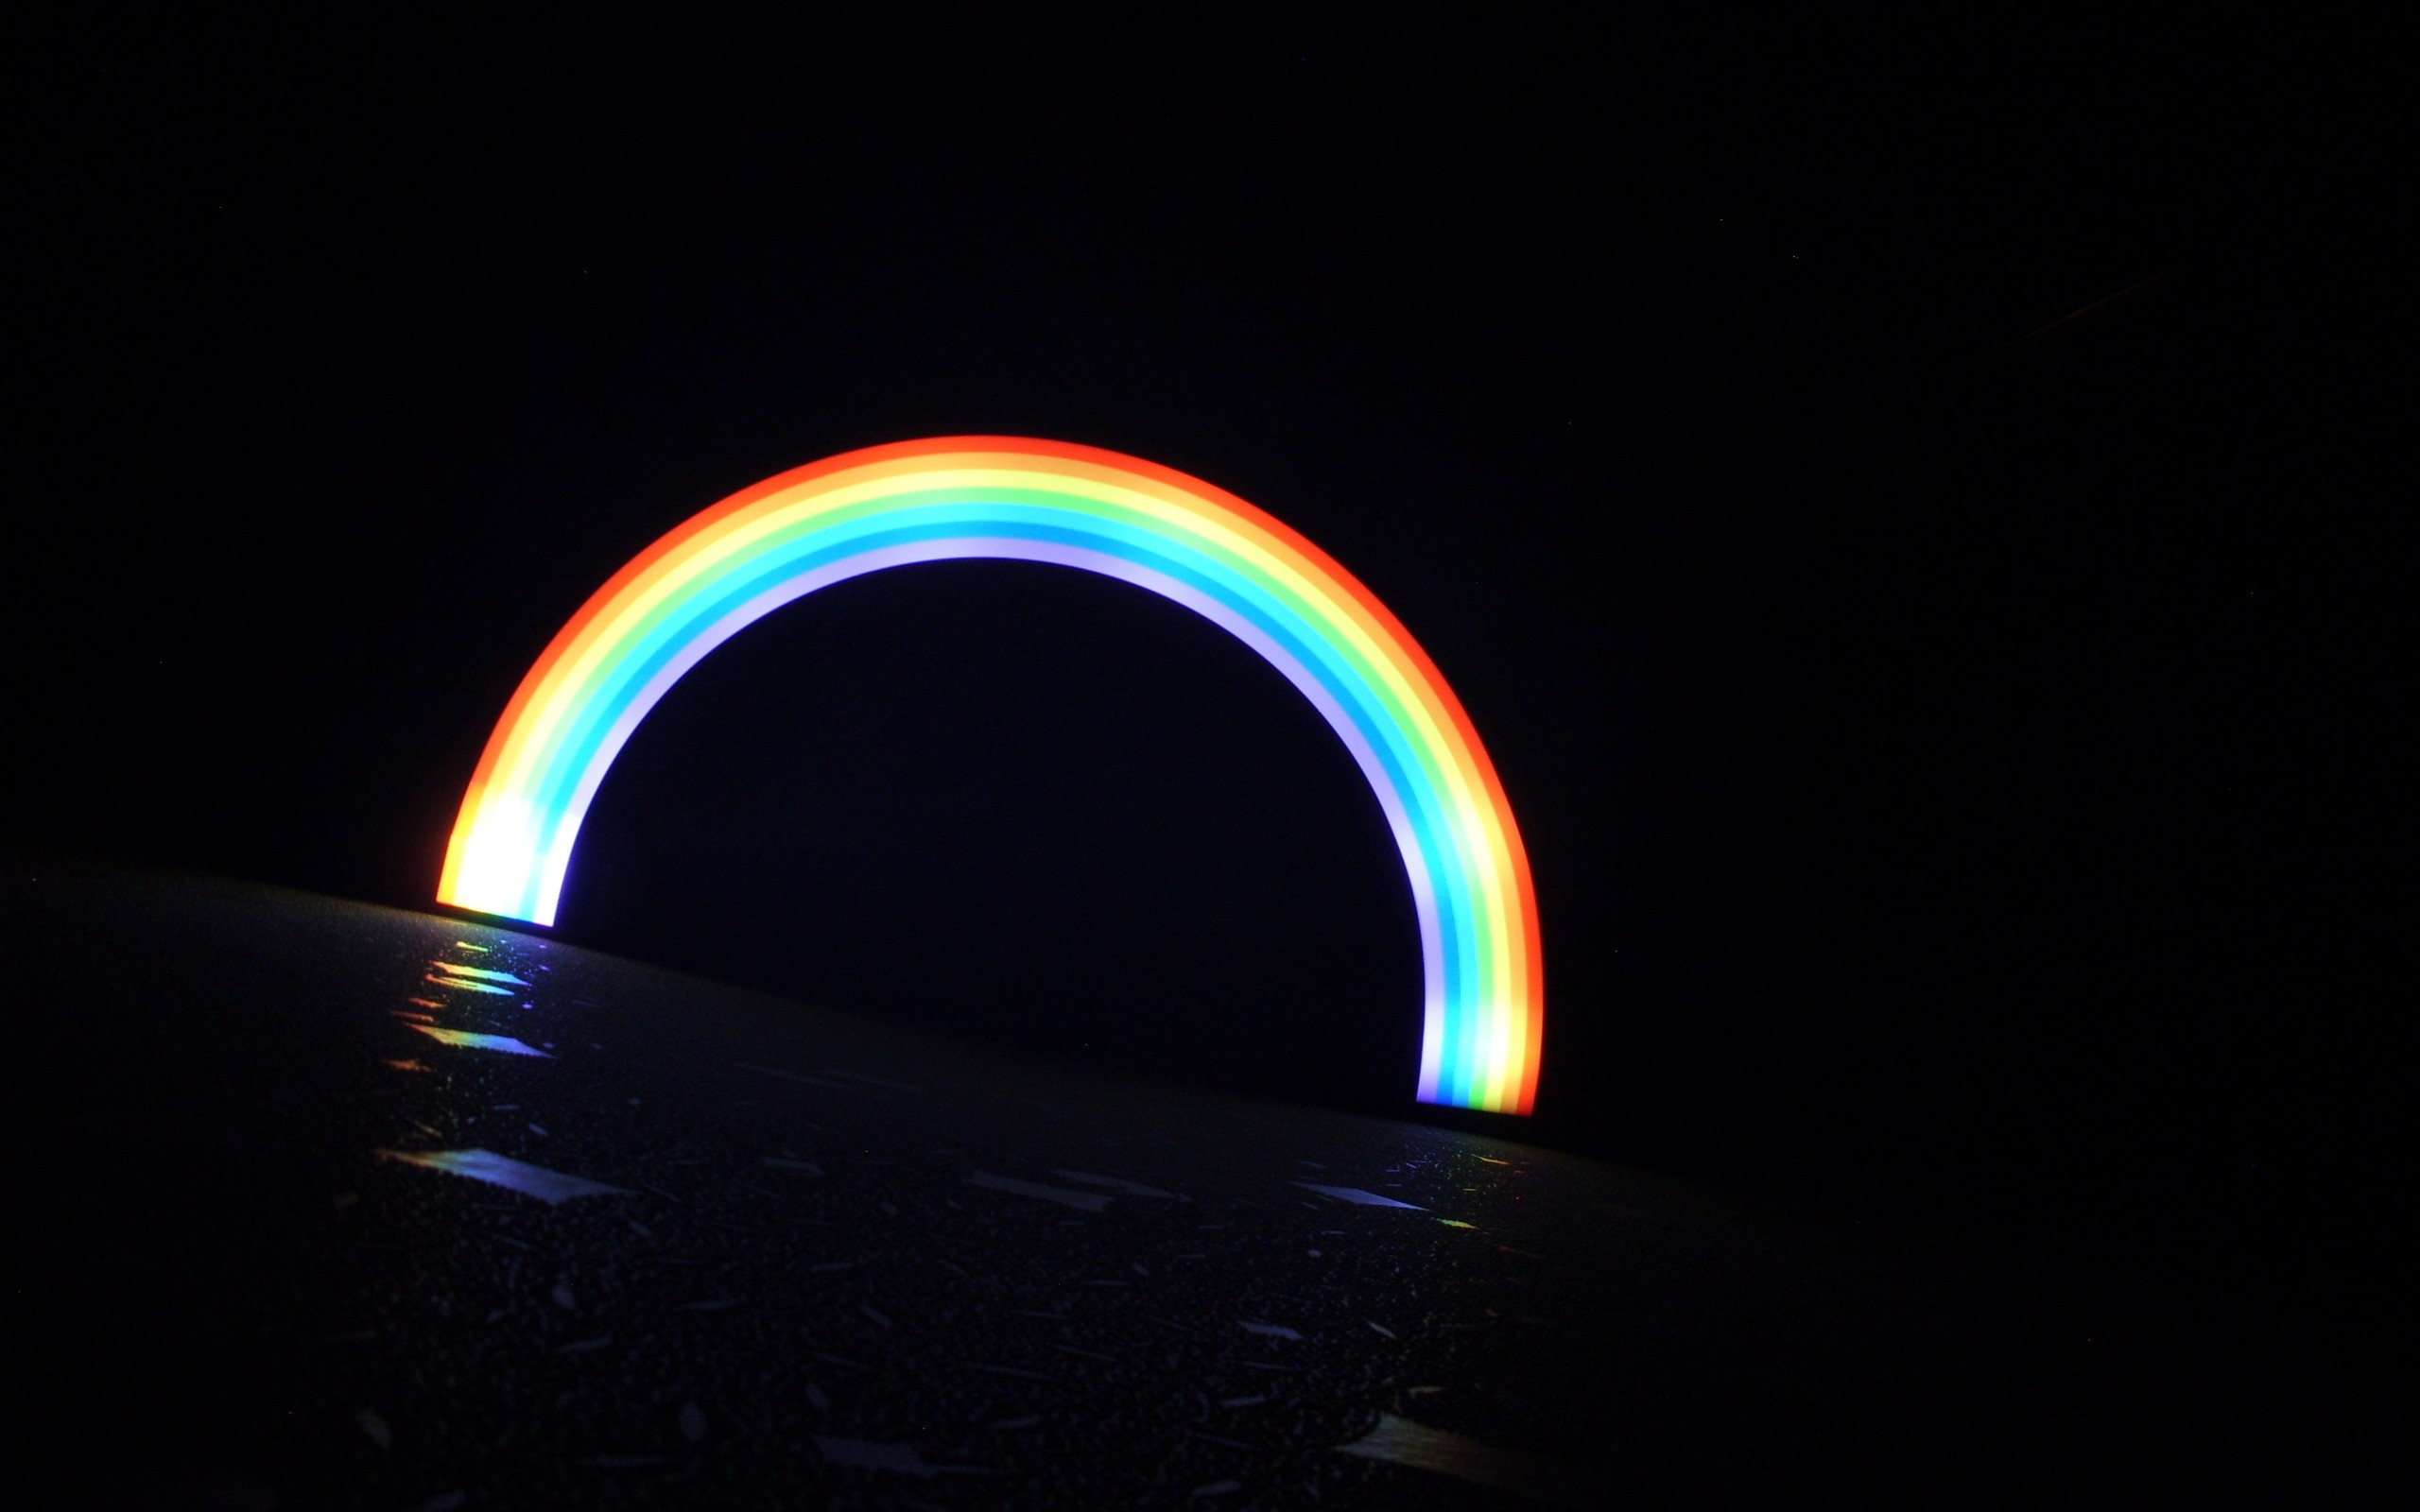 Led Rainbow Wallpaper Fondos De Pantalla Hd Led 470833